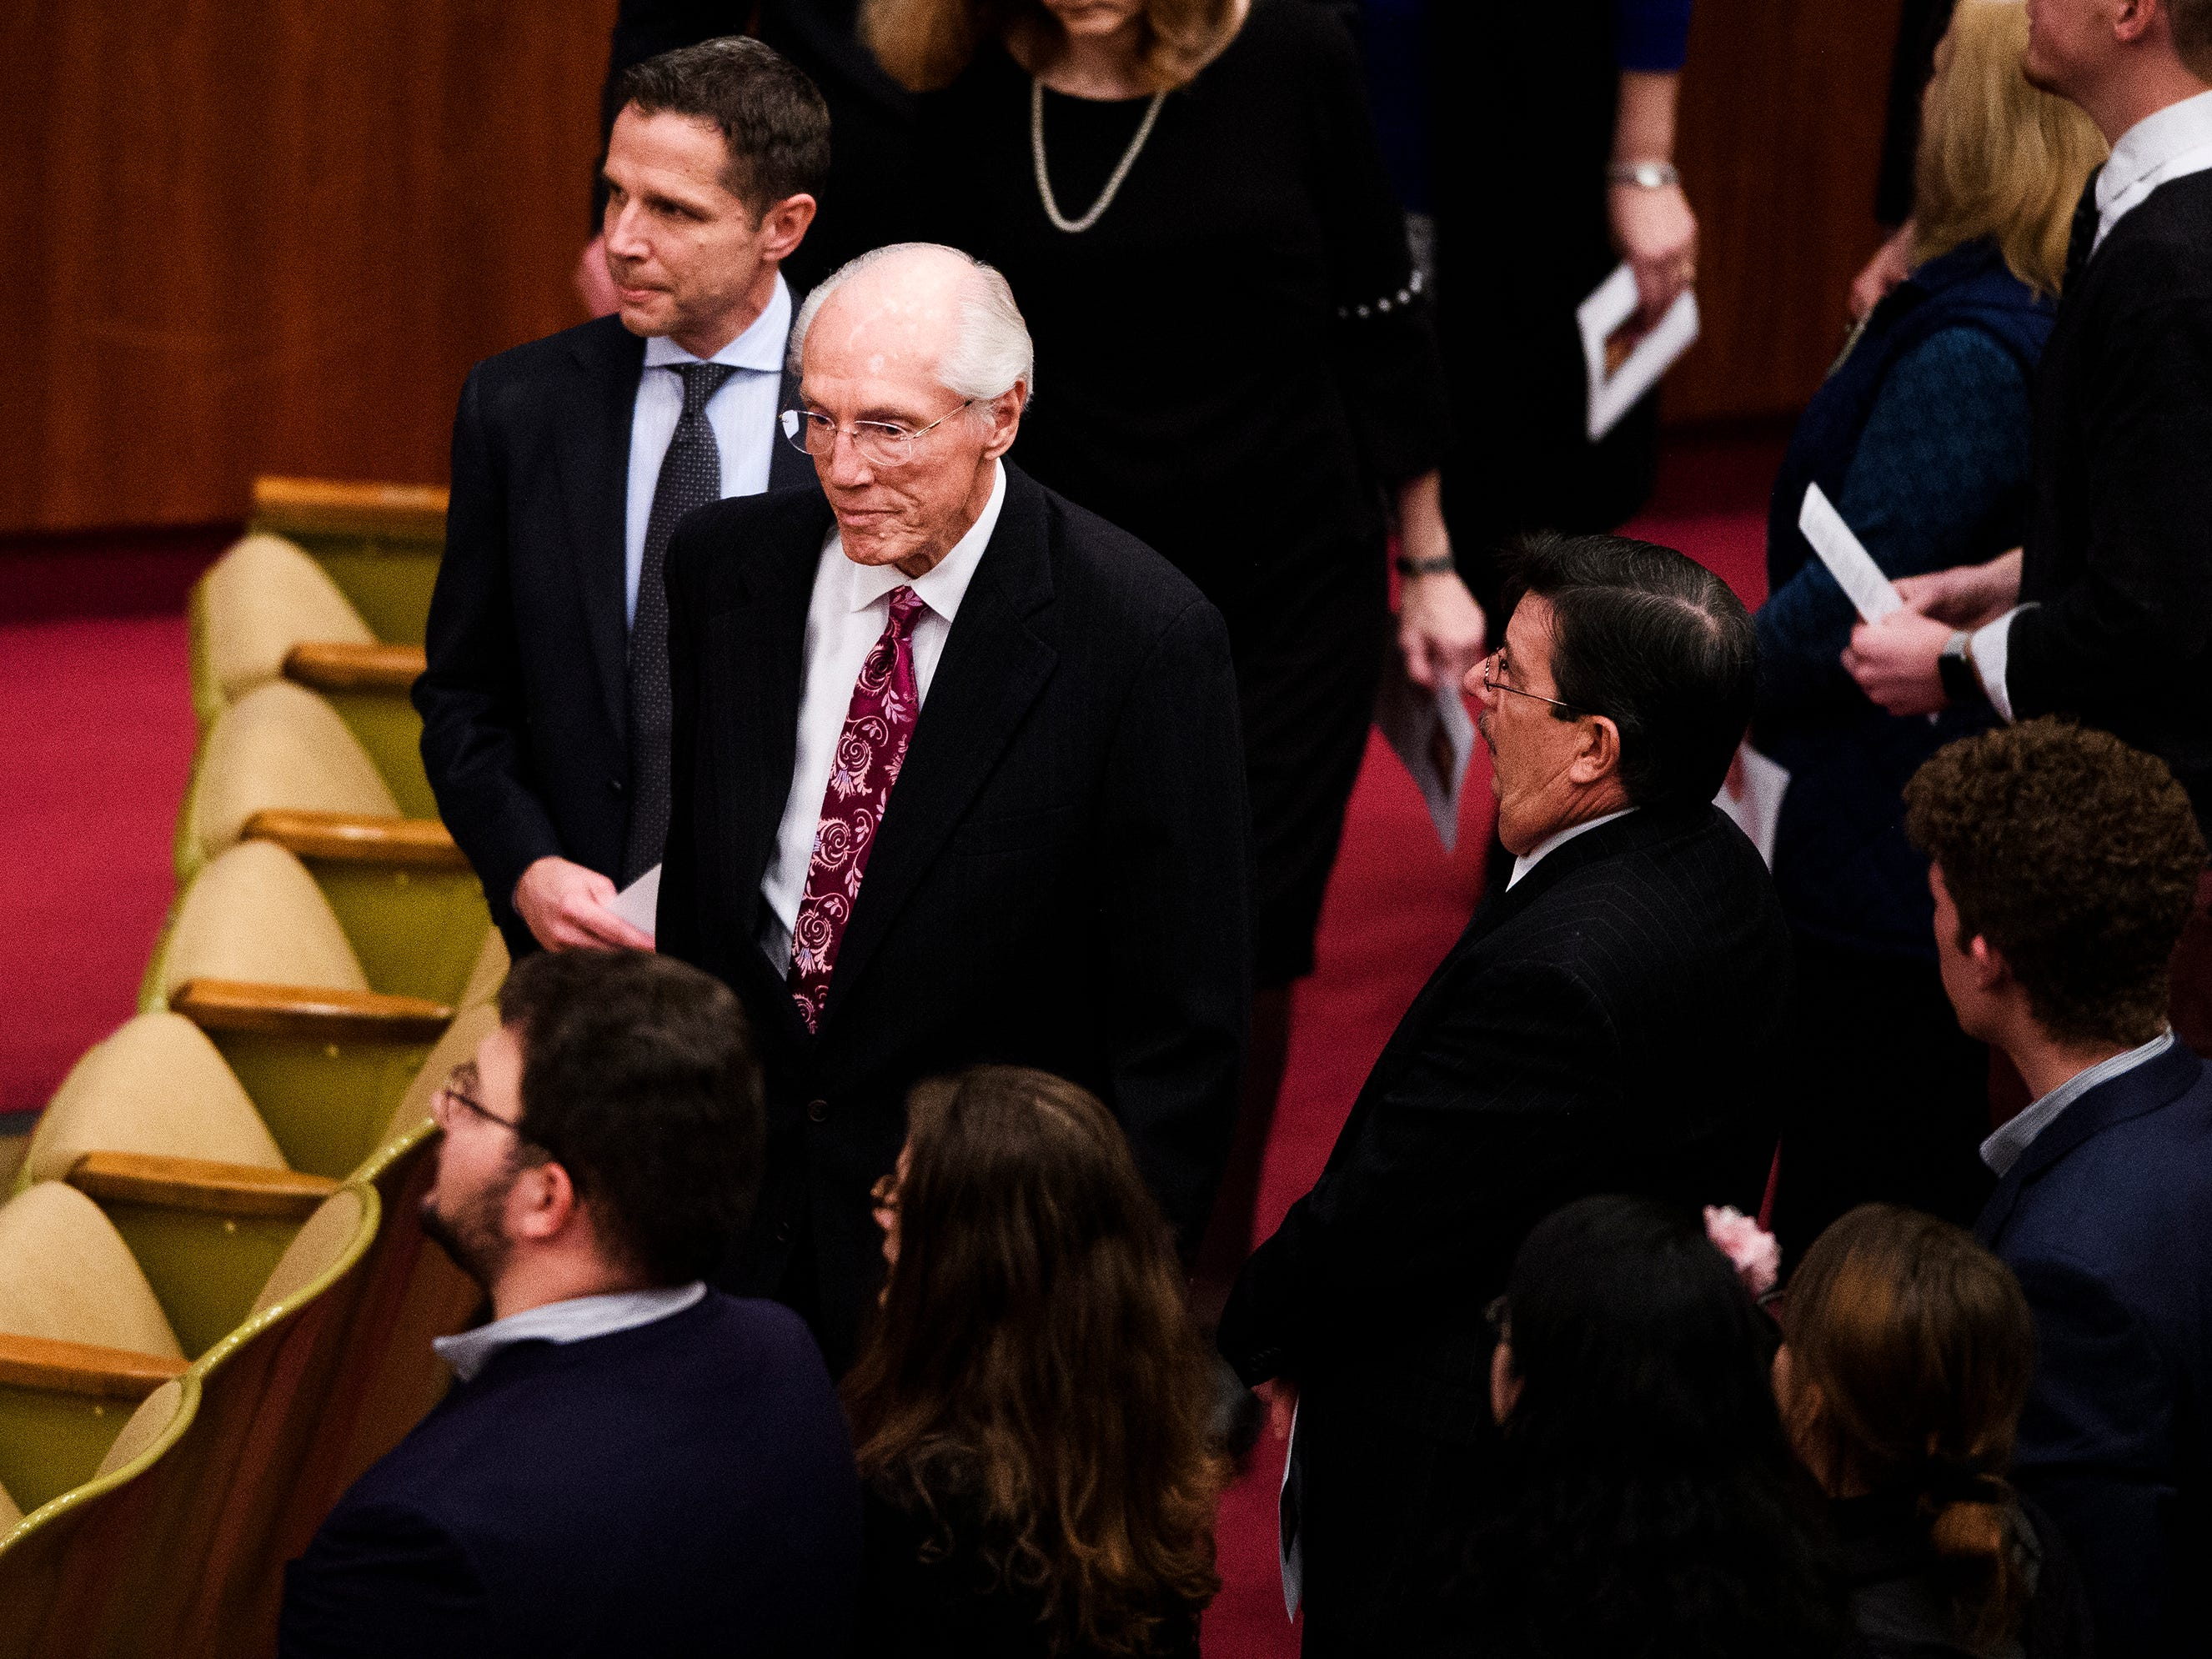 Bob Jones III and other loved ones of Beneth Peters Jones take their seats at Founder's Memorial Amphitorium before Beneth's funeral service on Wednesday, Feb. 6, 2019.